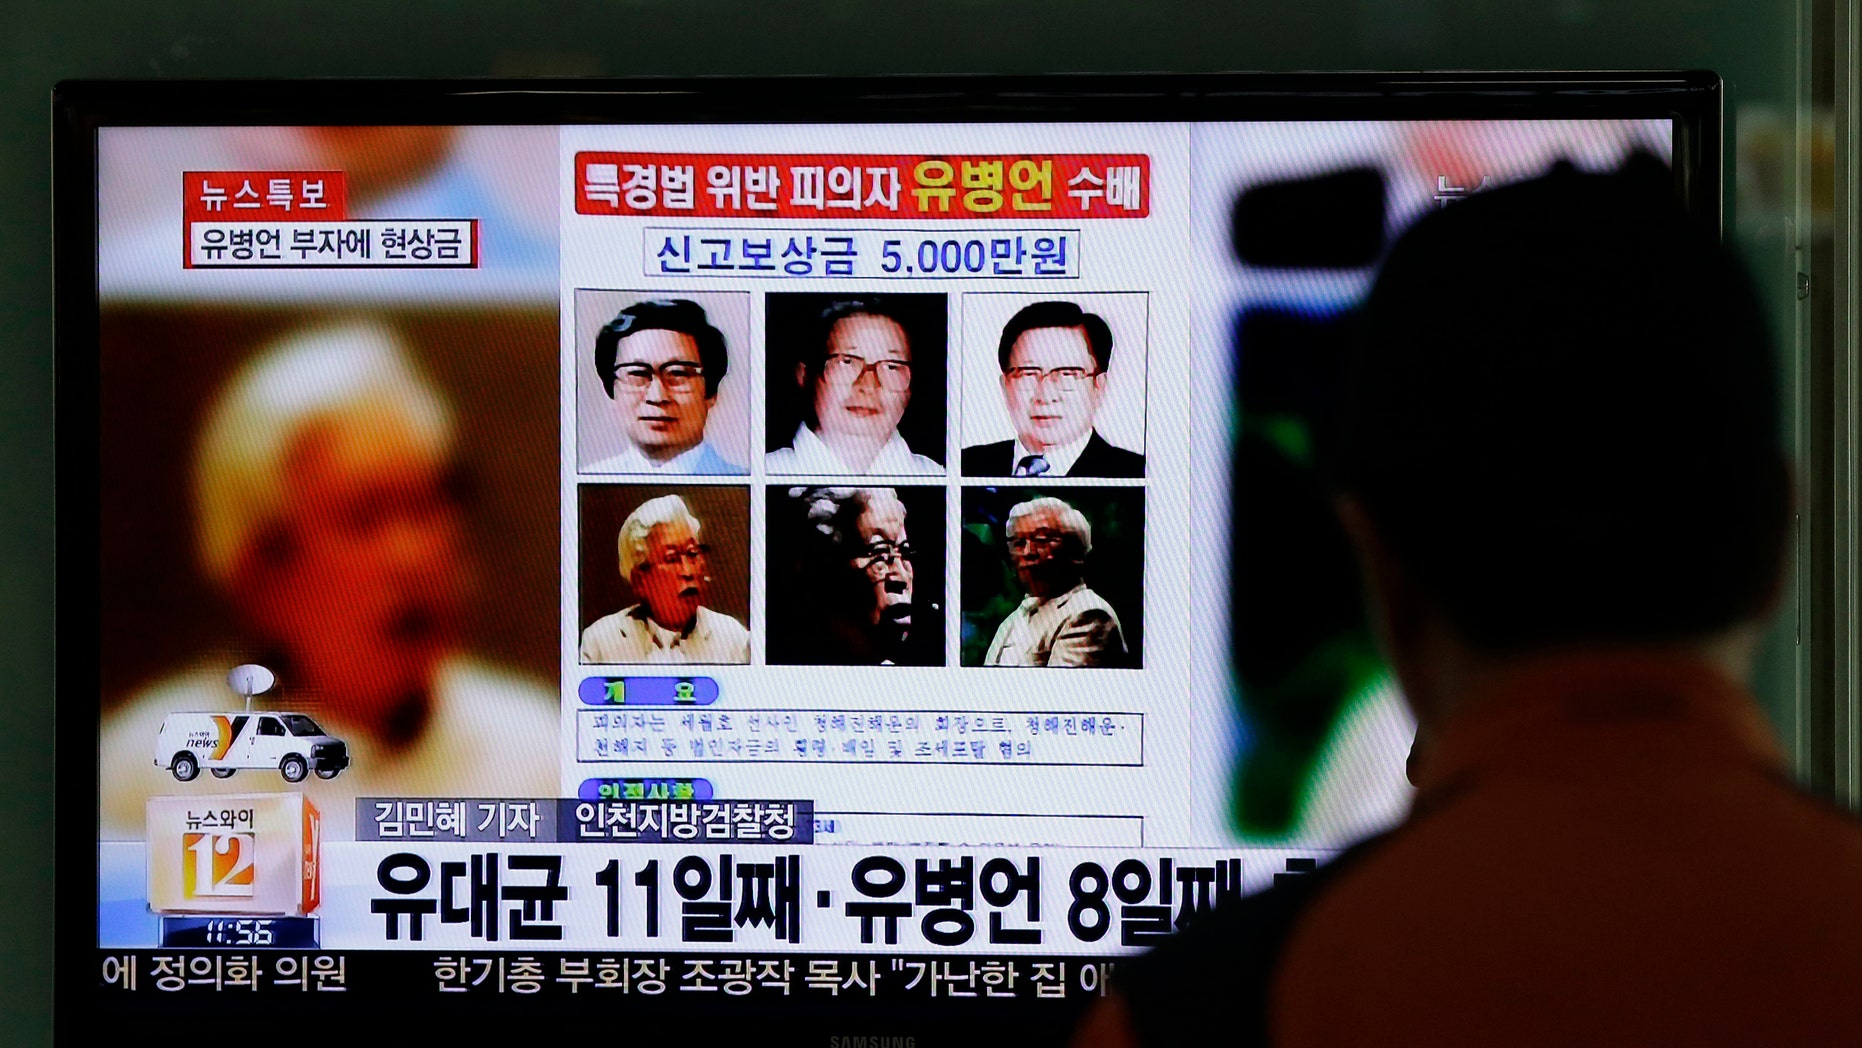 May 23, 2014 - A TV news program shows the reward poster of Yoo Byung-eun at the Seoul Train Station in Seoul, South Korea. South Korea is offering a big bounty to find the mysterious billionaire thought to be the owner a ferry that sank last month, leaving more than 300 people dead or missing.